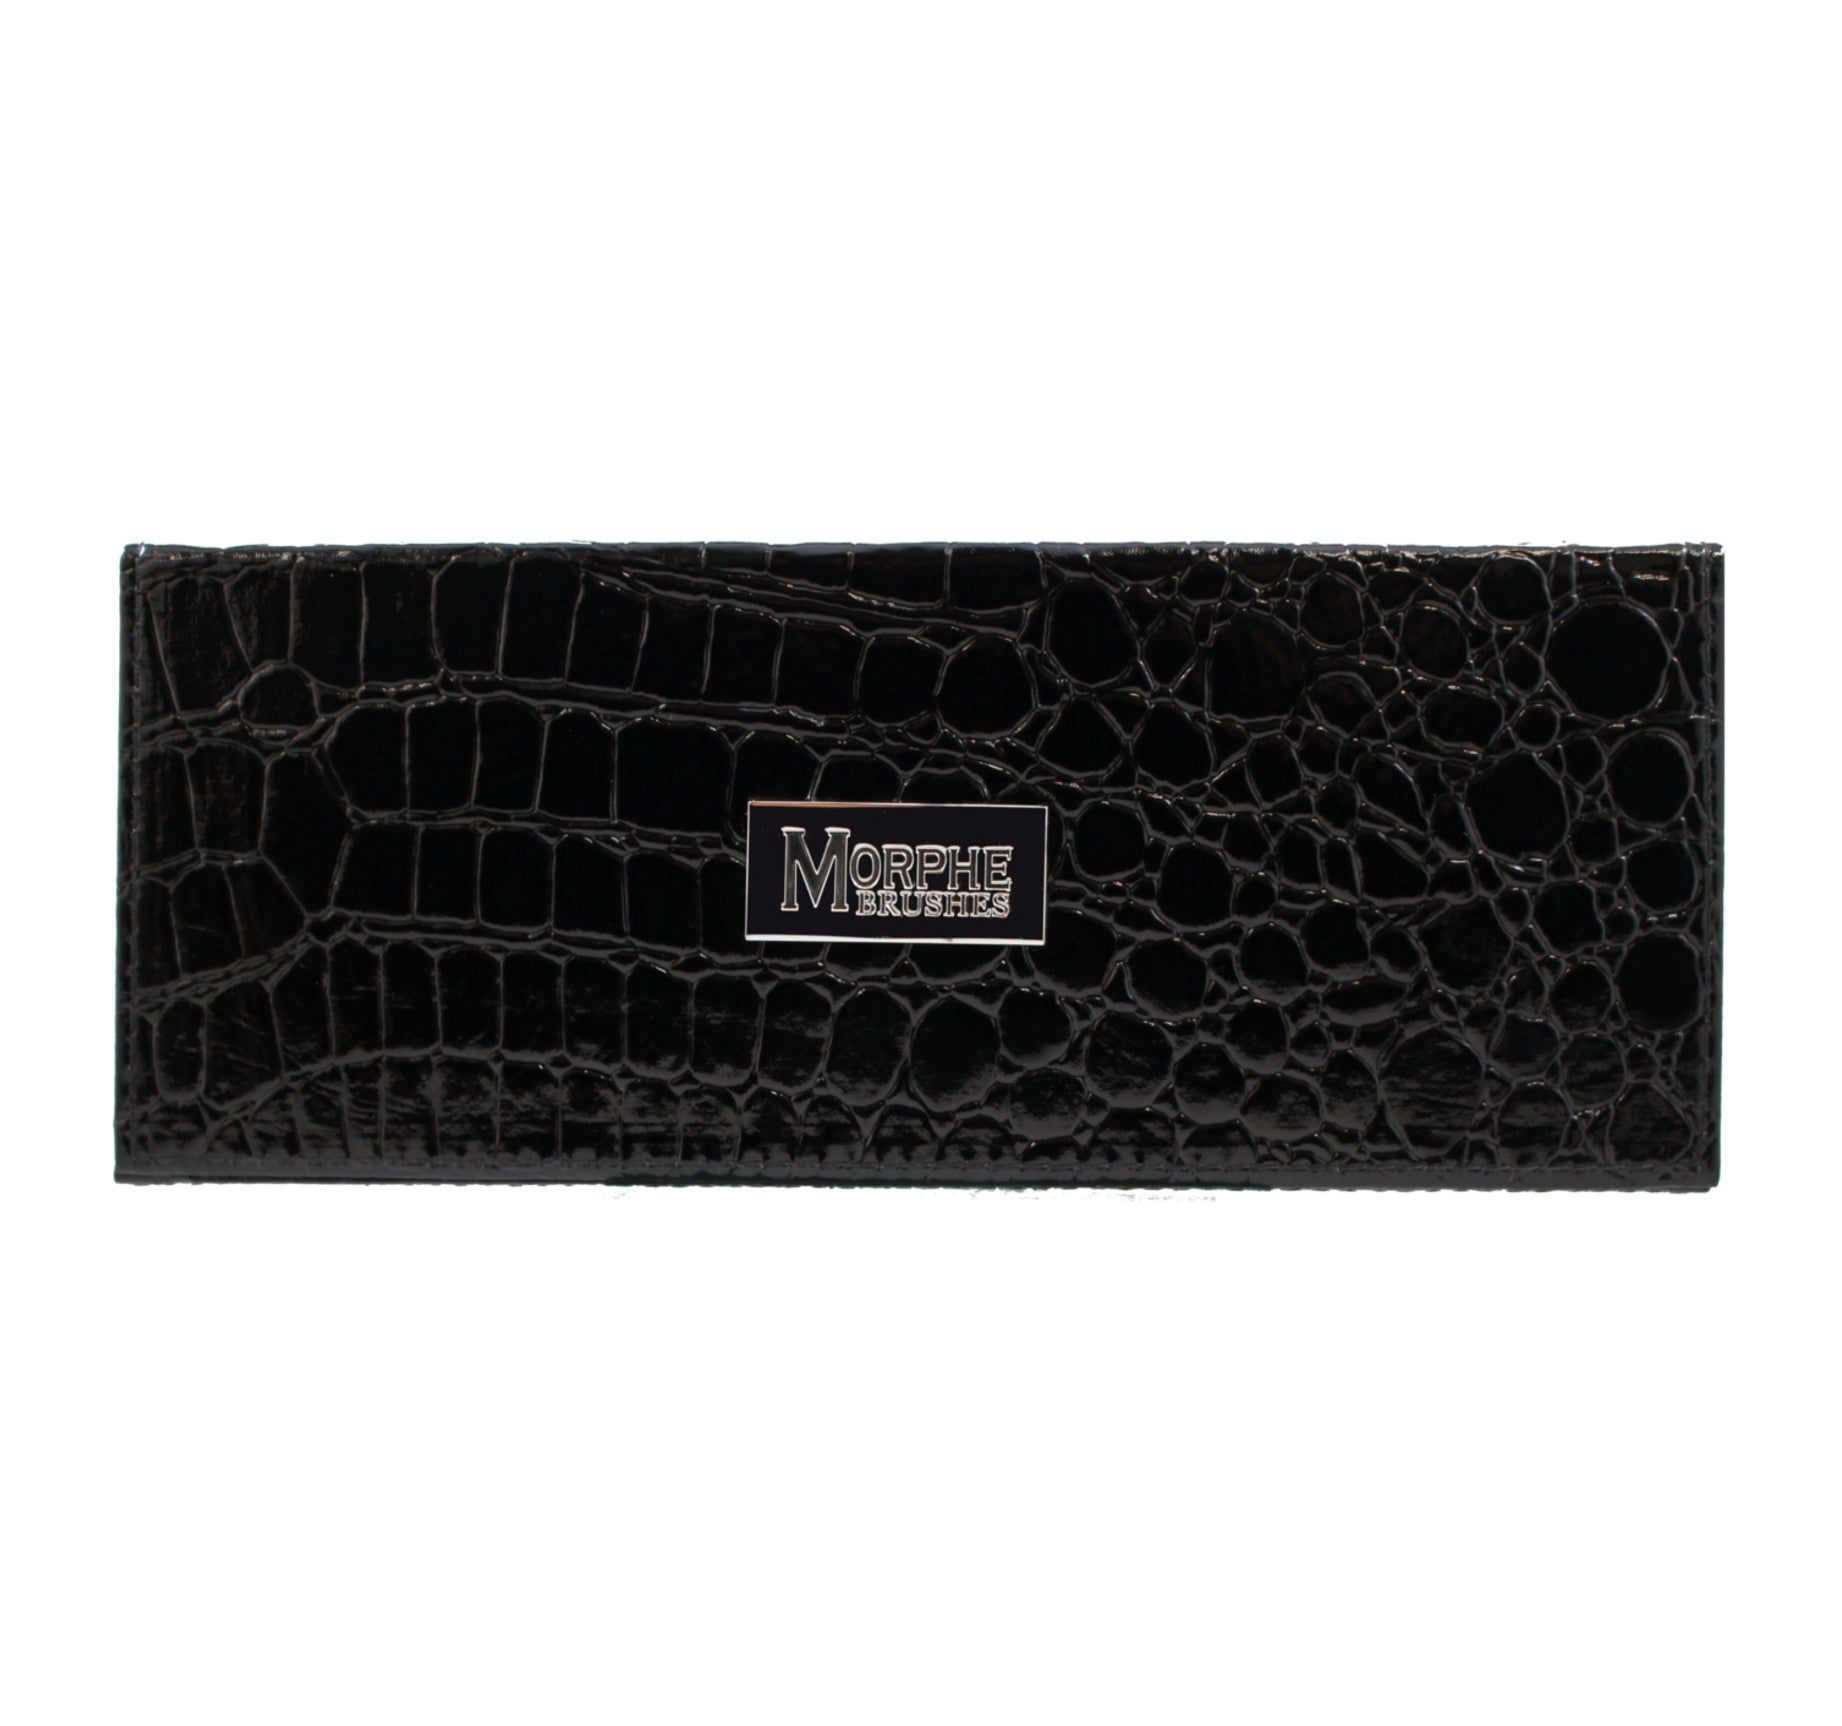 Usaa Life Insurance Quotes Hh Square Snakeskin Case  Morphe Us